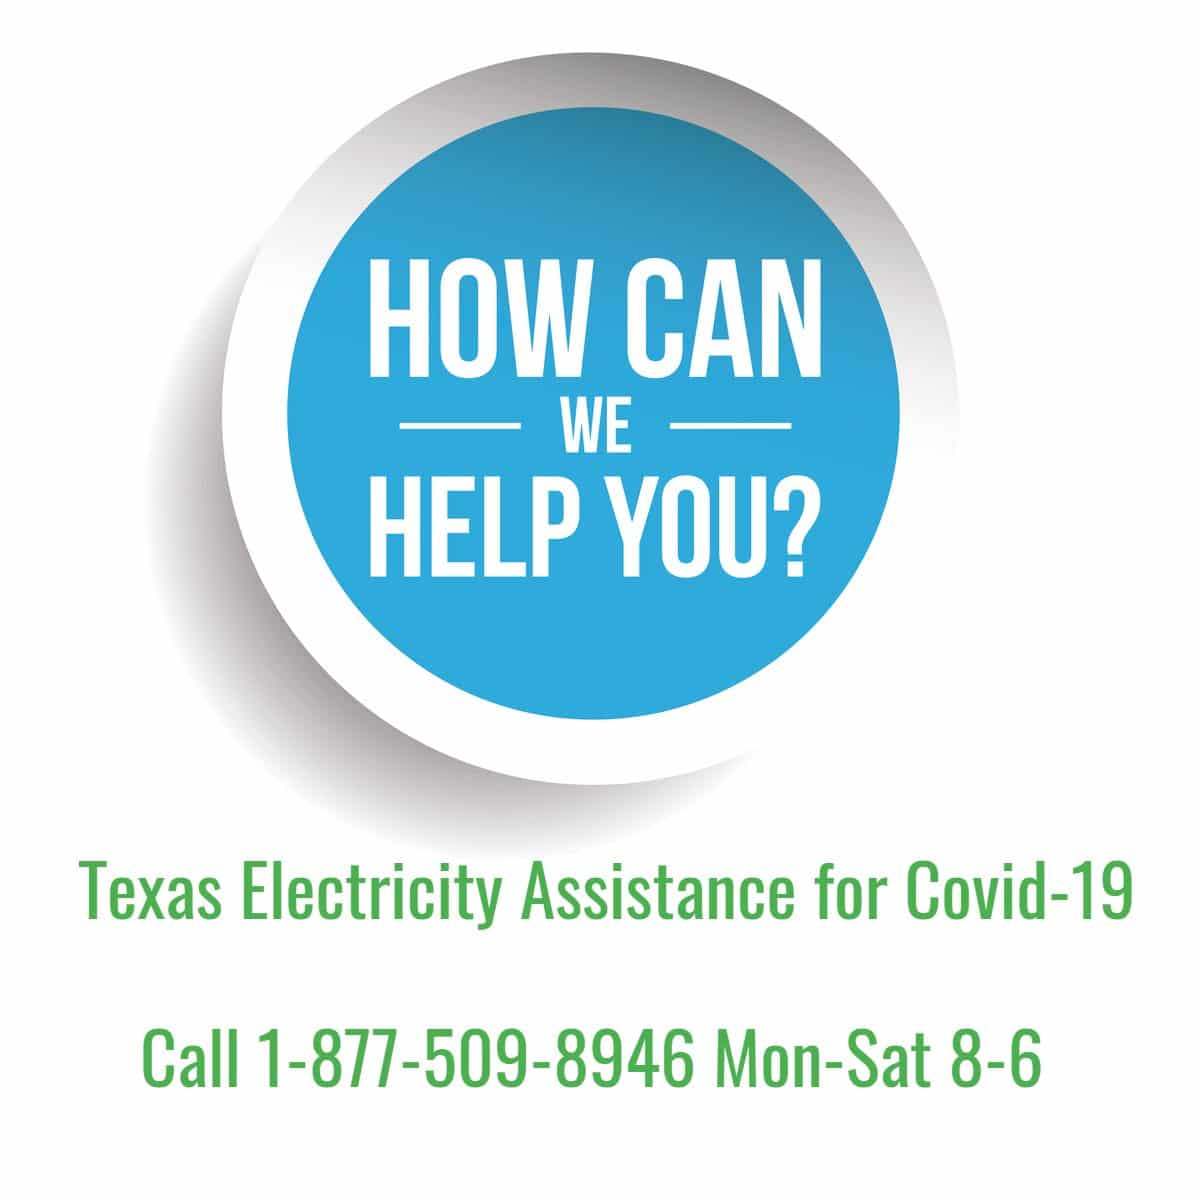 Covid-19 And Your Texas Electricity Bill